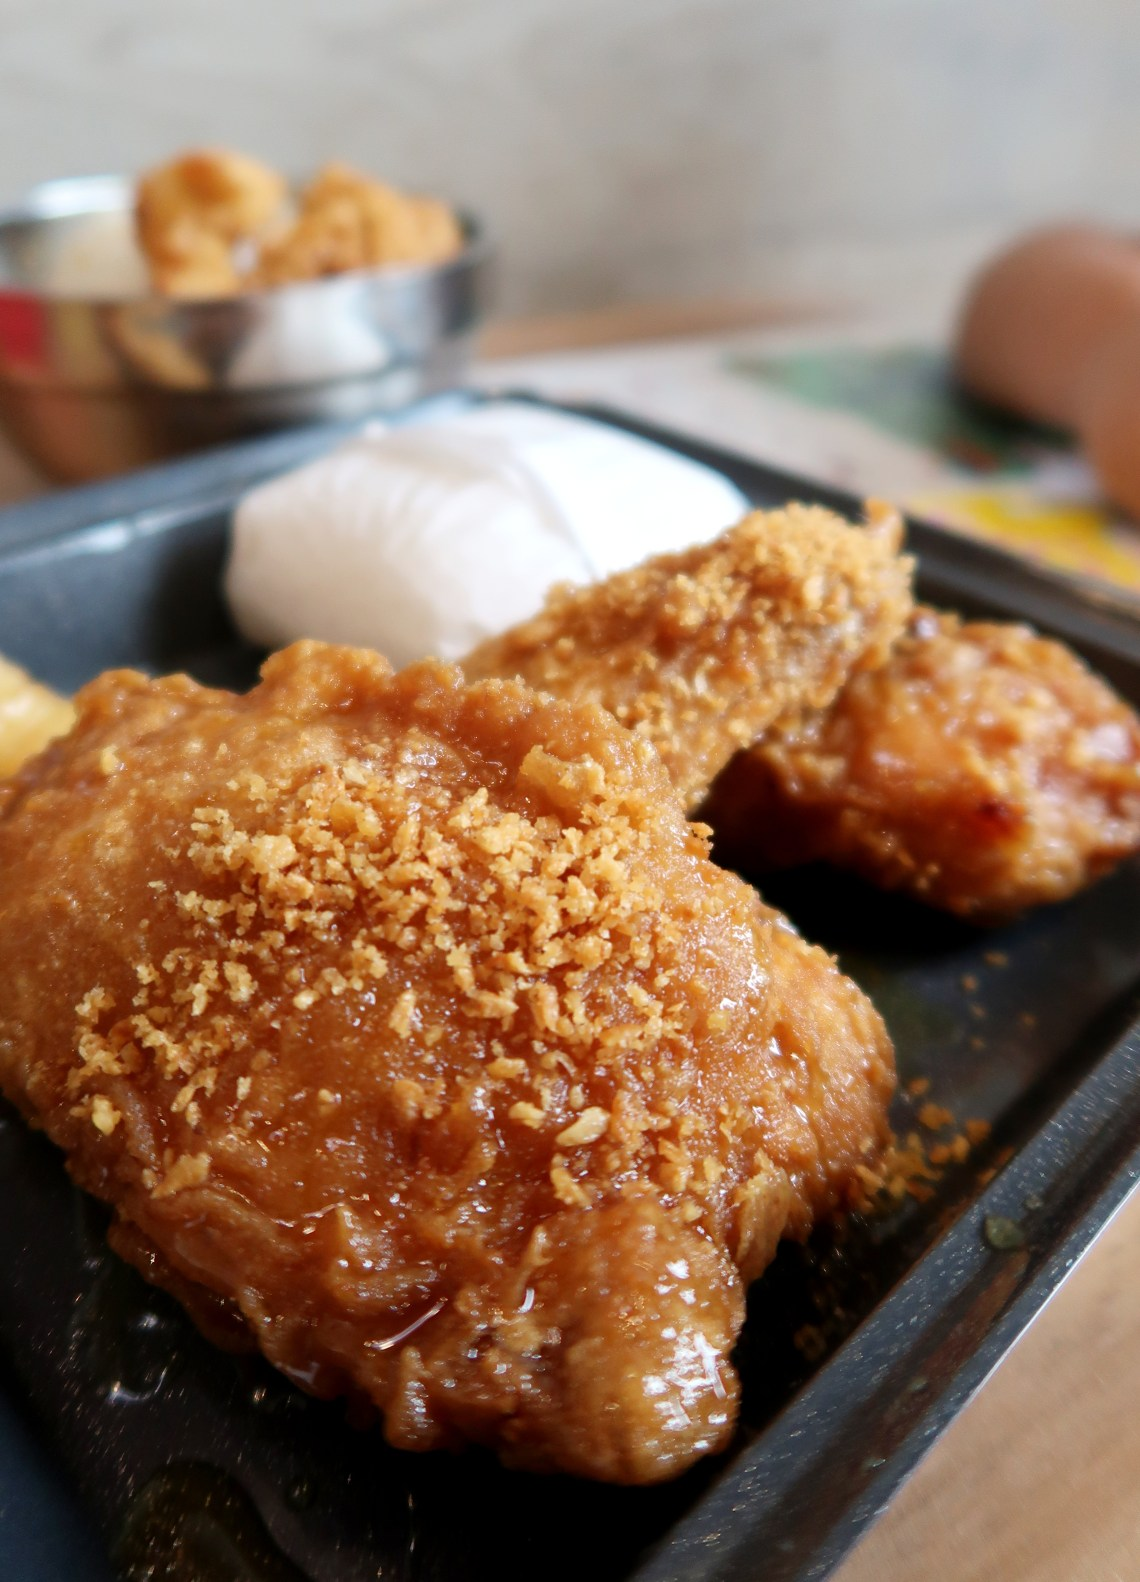 dyosathemomma: Bonchon Kiddie Adventure Meal Promo, soy garlic chicken